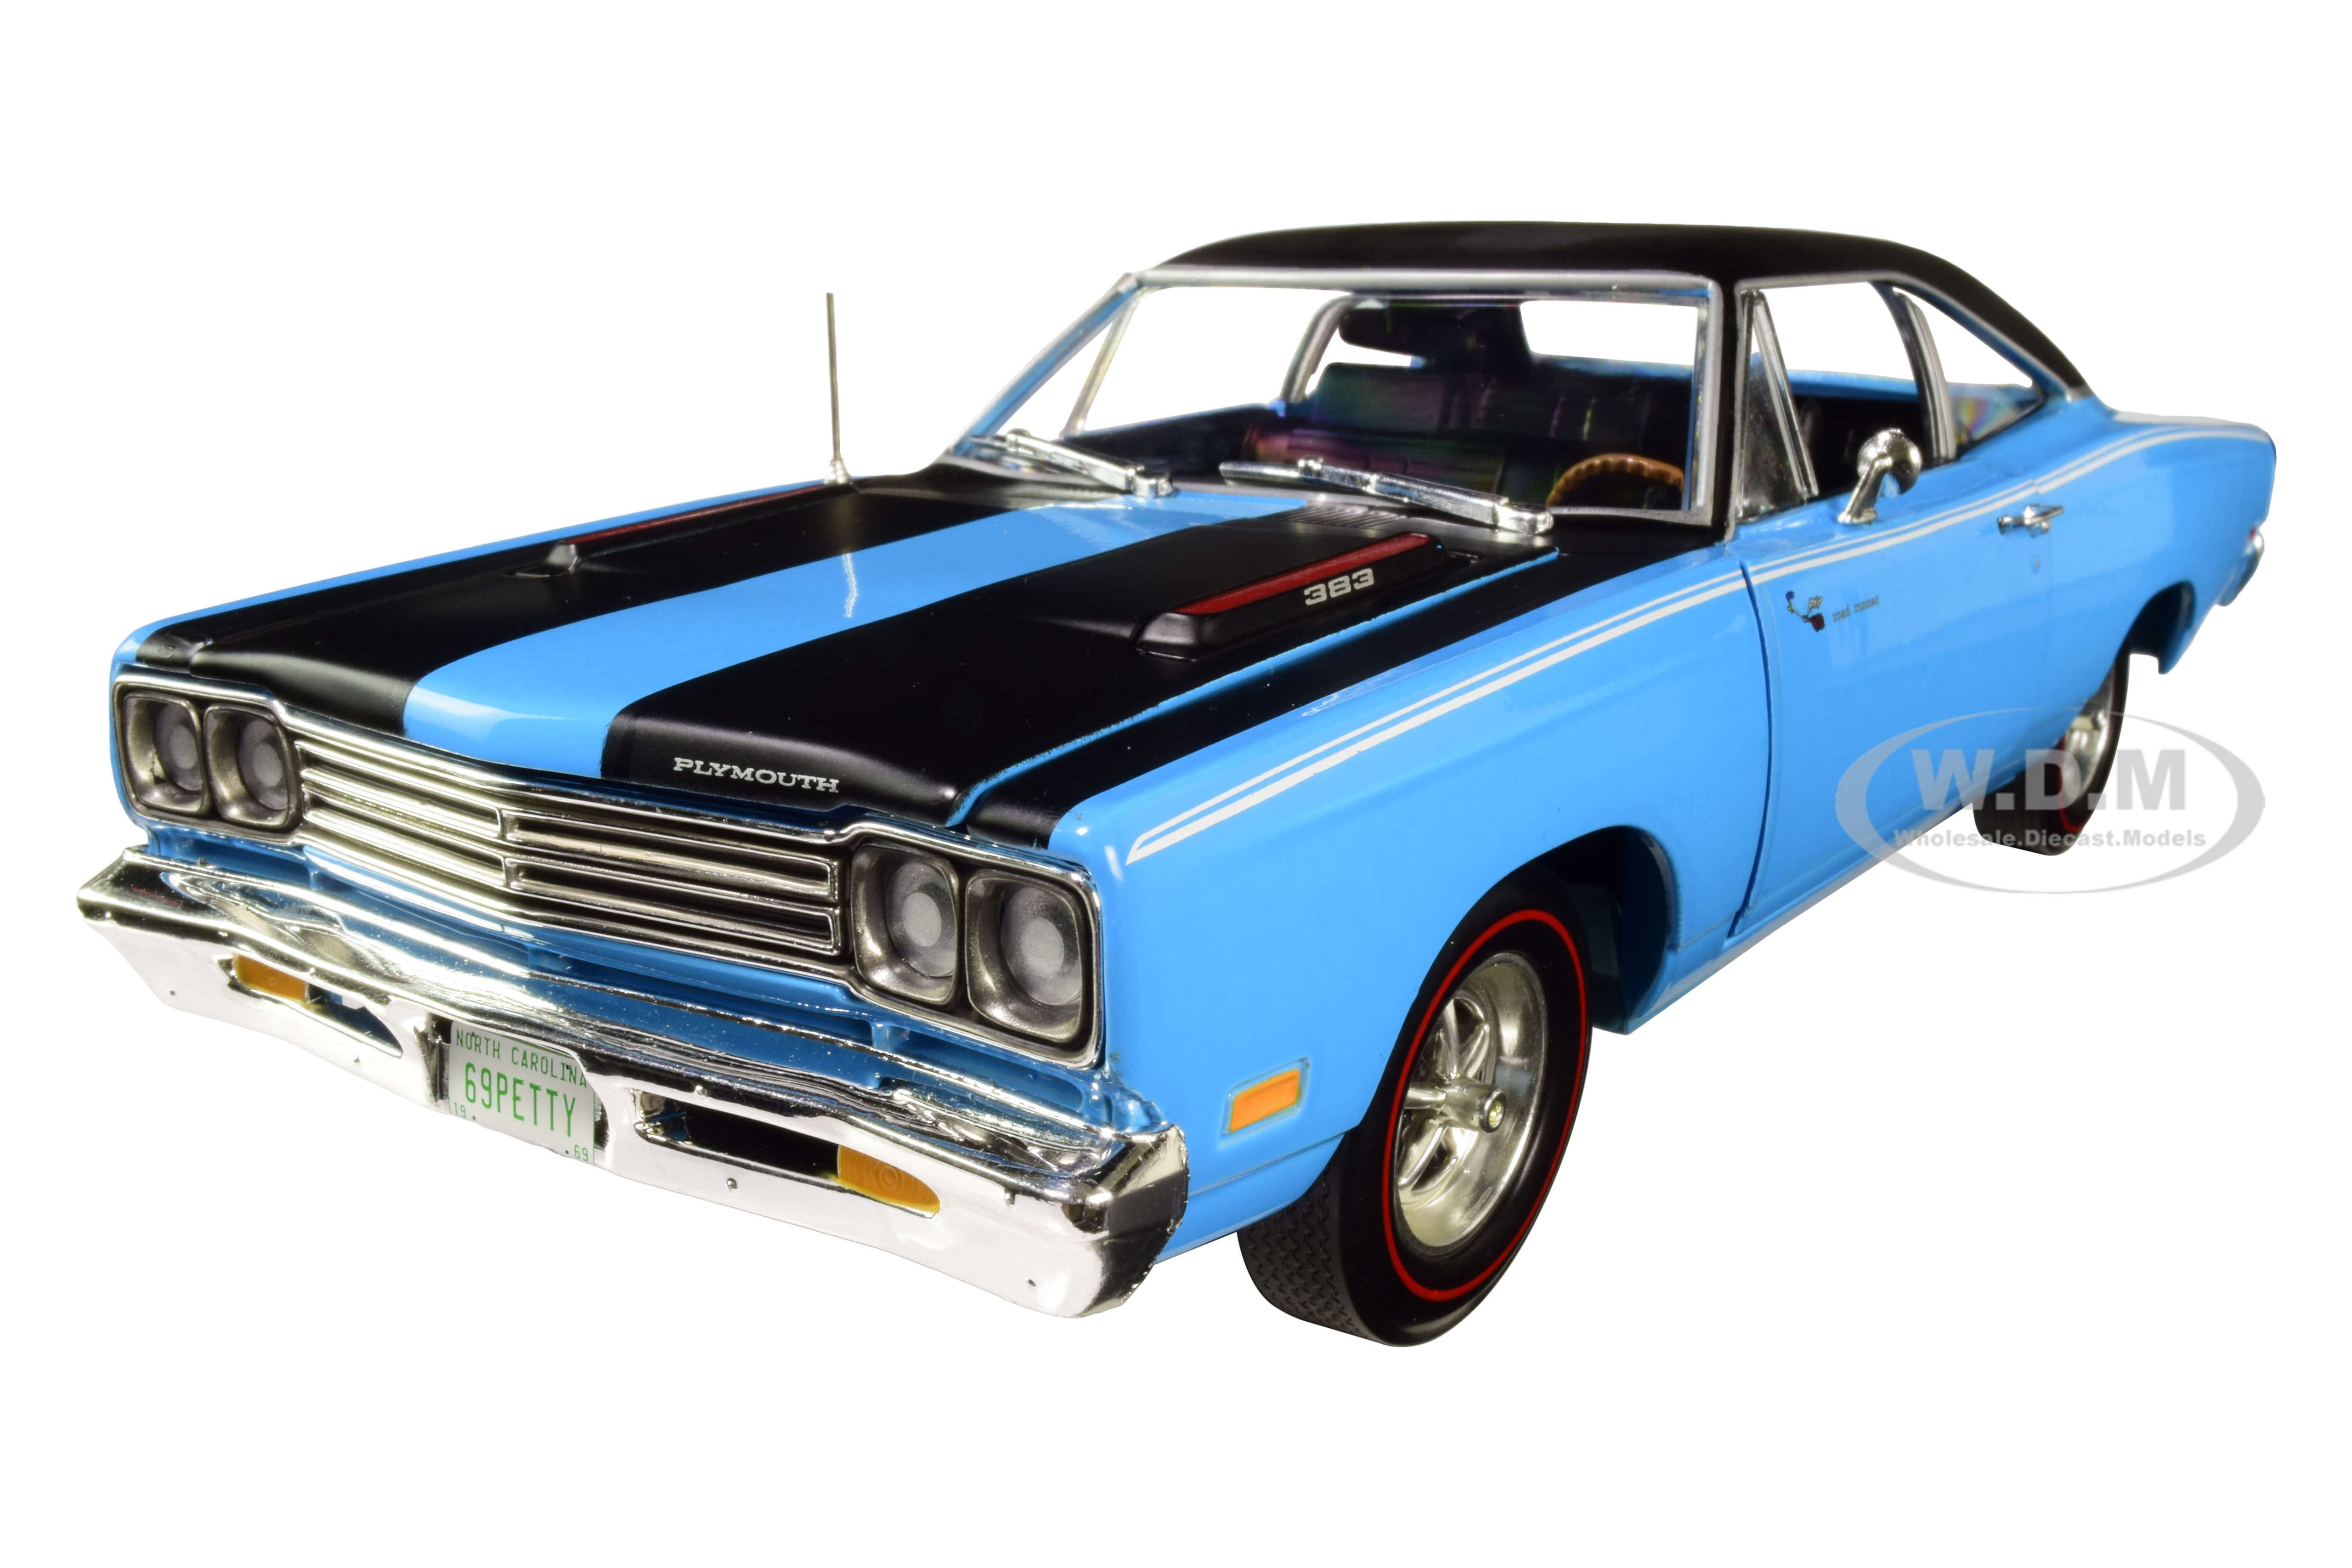 1969 Plymouth Road Runner Hardtop Petty Blue with Black Top and Black Stripes